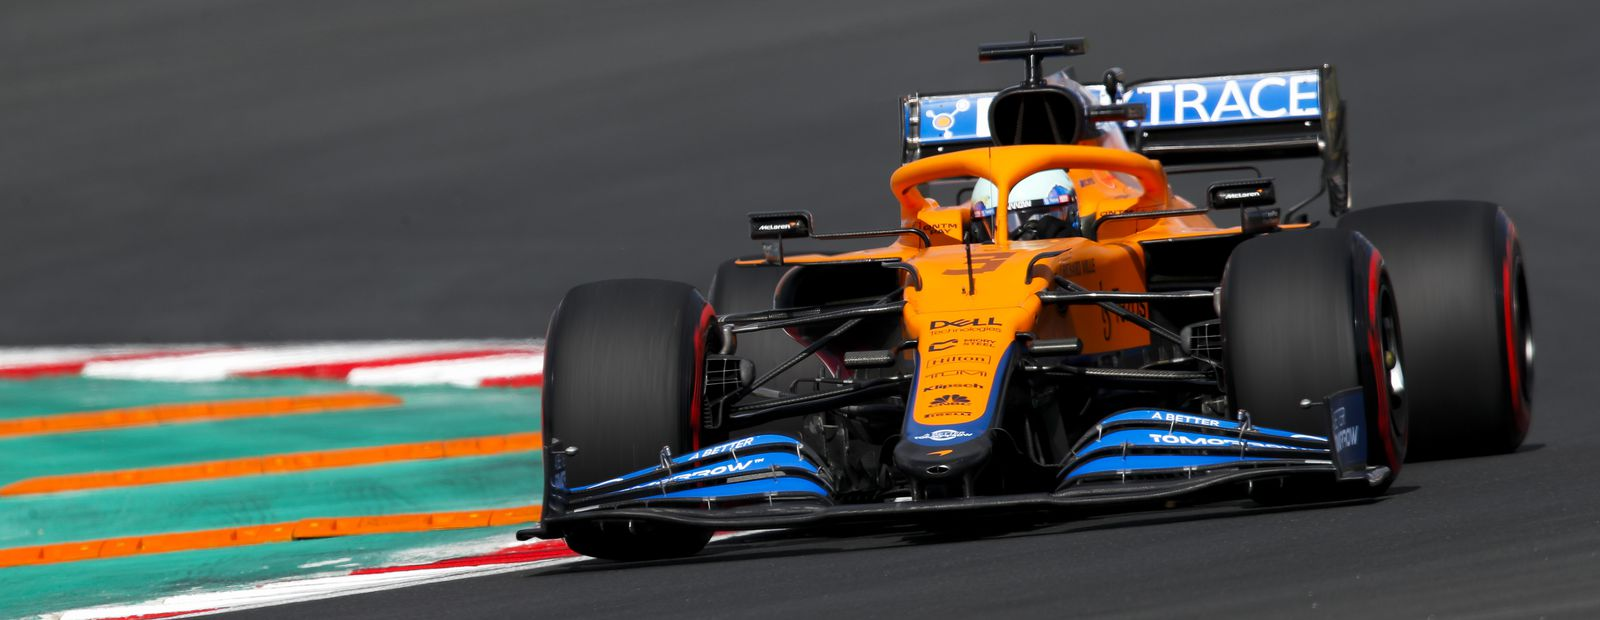 Everything you need to know for the Turkish Grand Prix